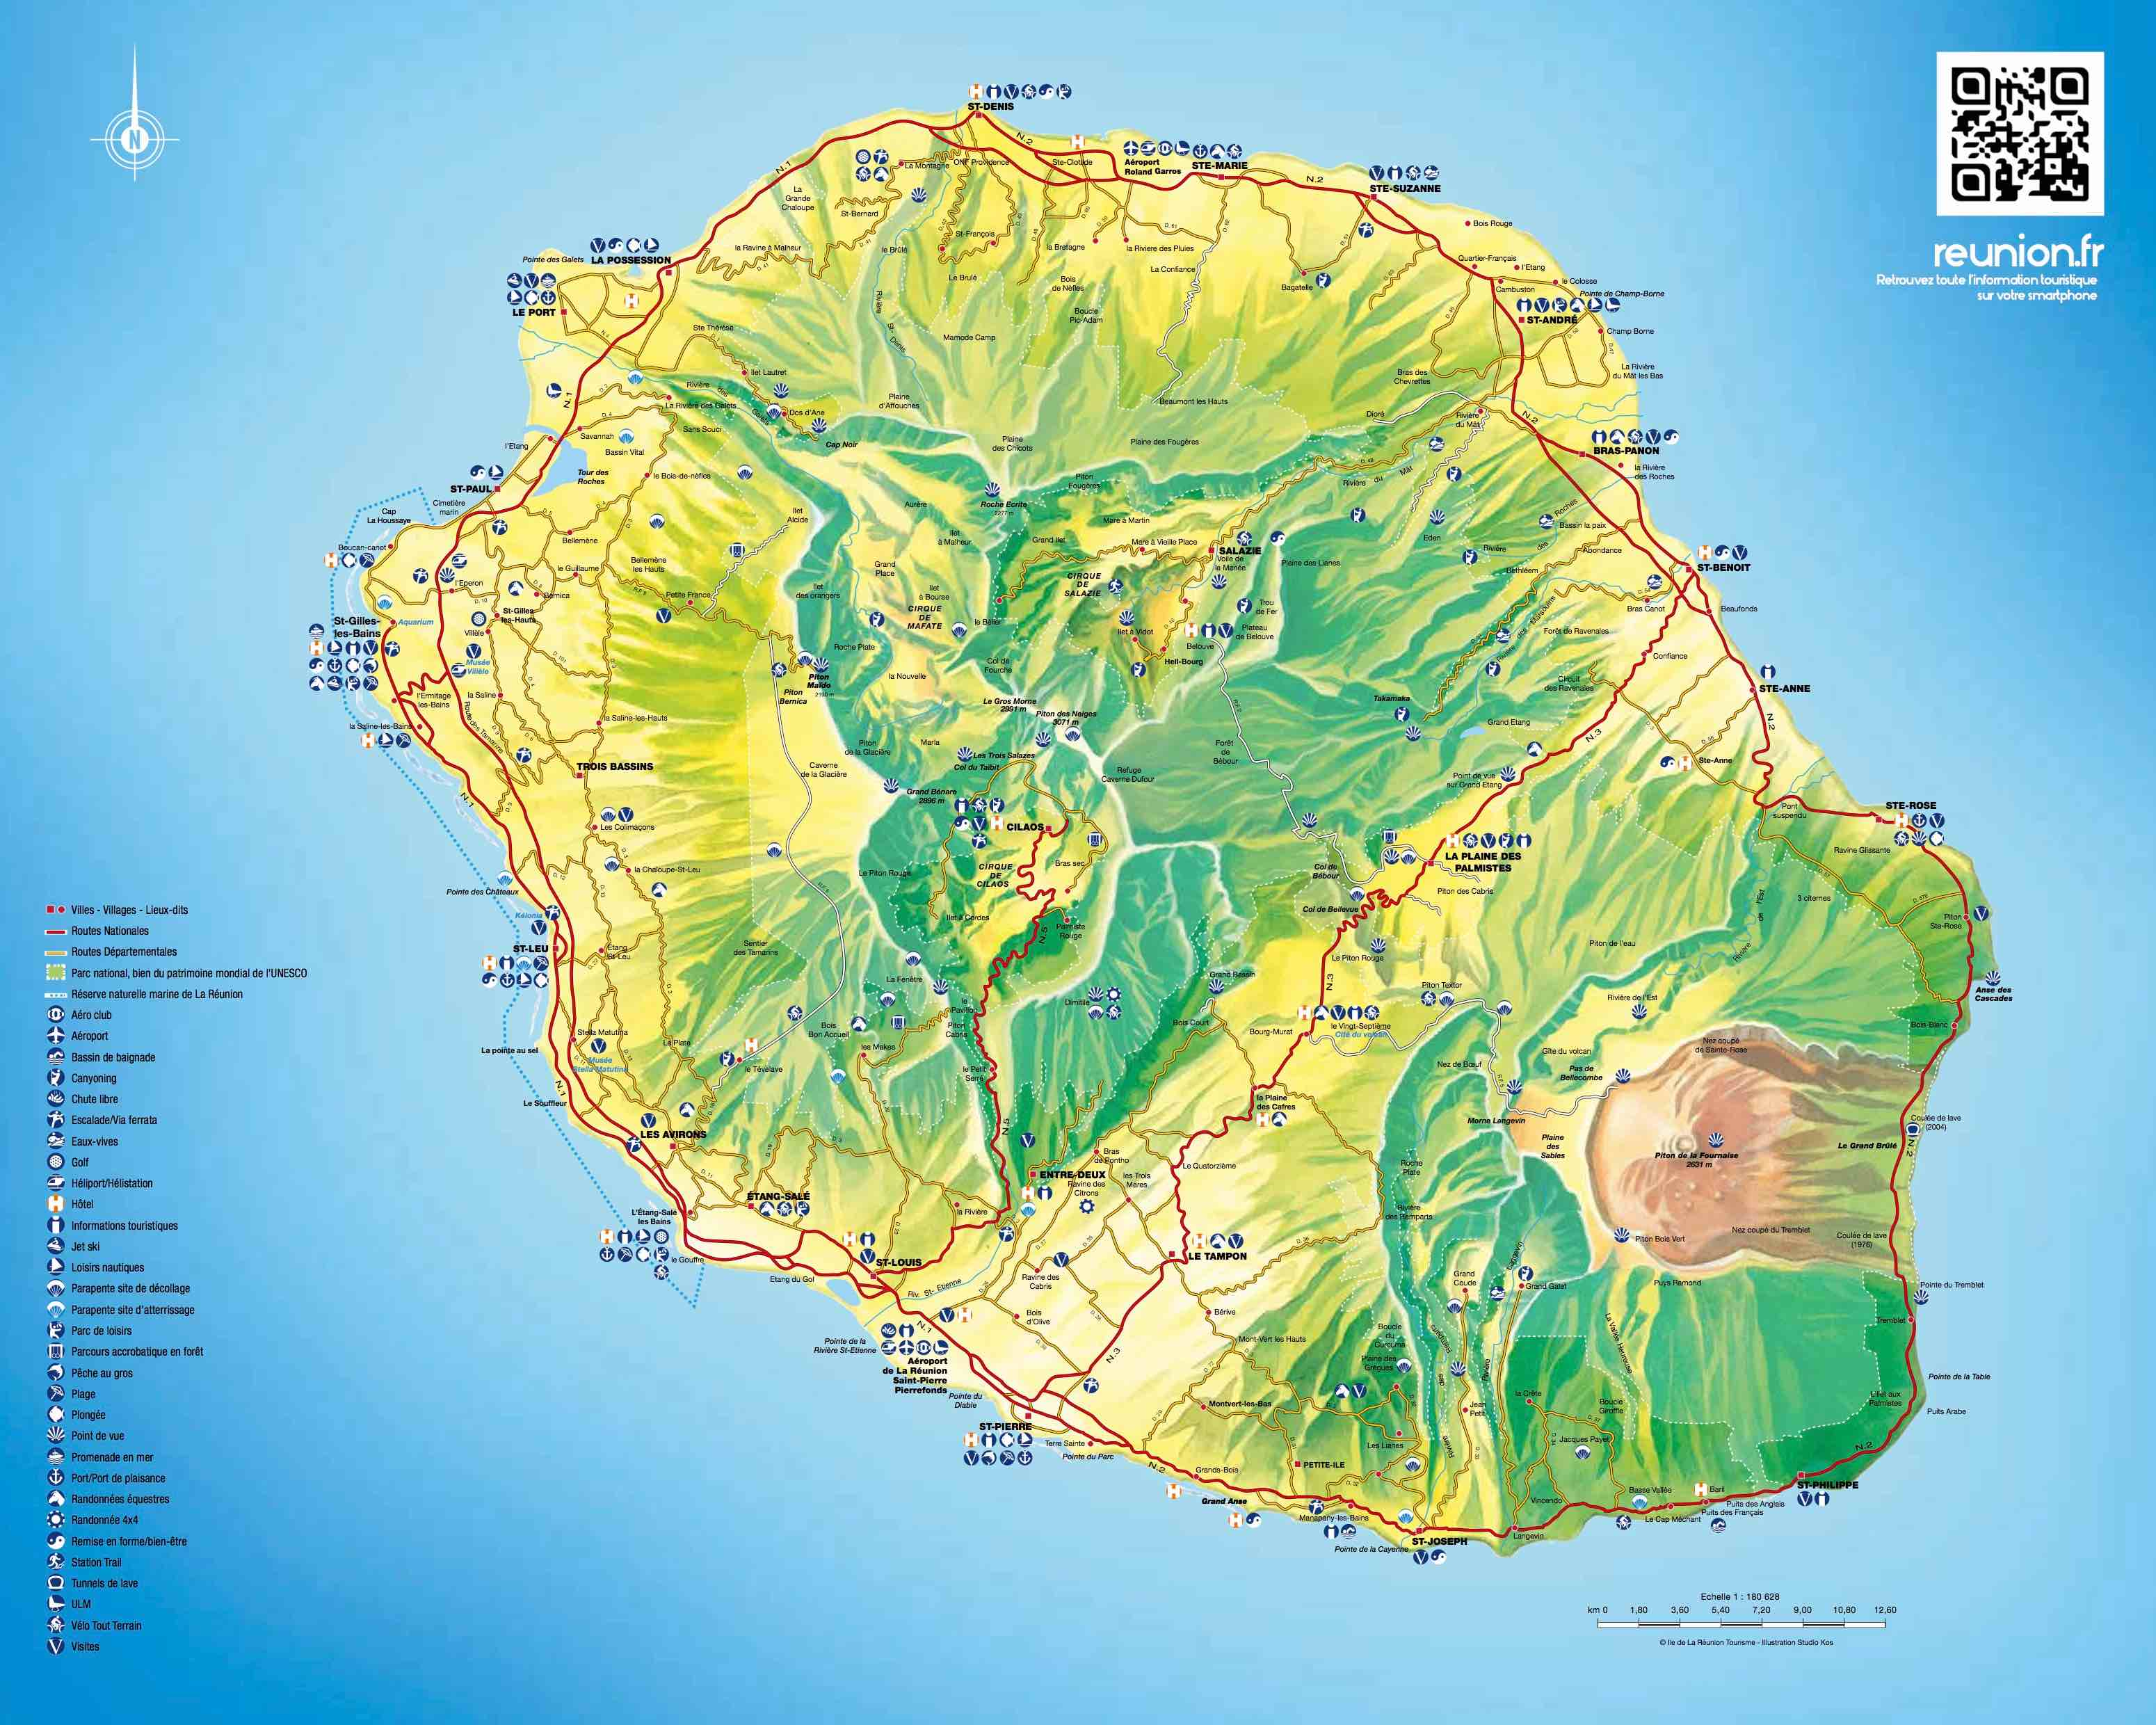 LA reunion : Carte, plan, villes de la rgion La Runion Guide Runion: Carte routire Ile de la Runion Situation et gographie de l le de la Reunion - Guide Runion